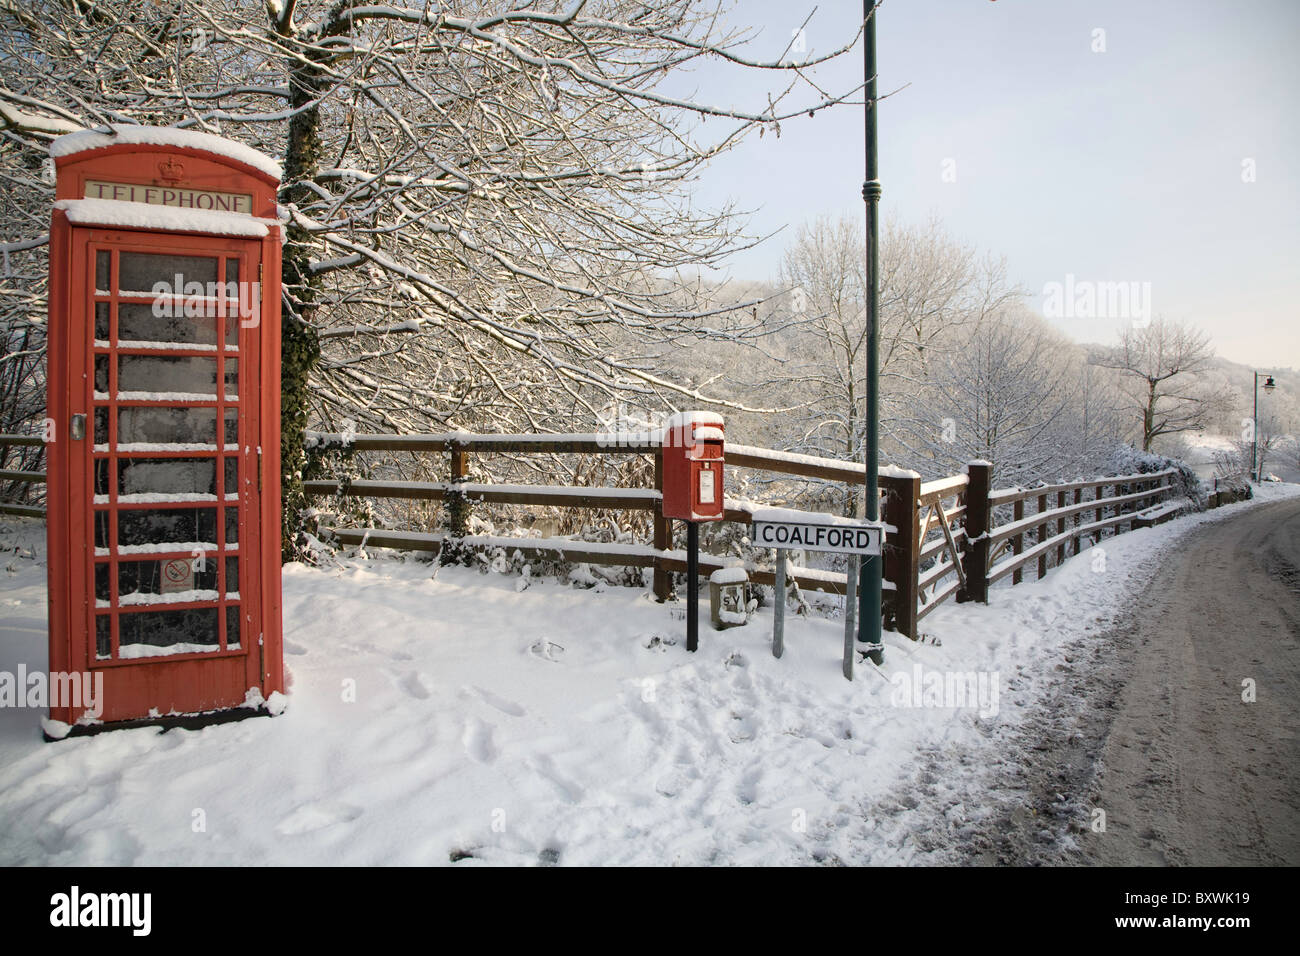 Telephone Box and Post Box by the side of a road during winter snow. - Stock Image